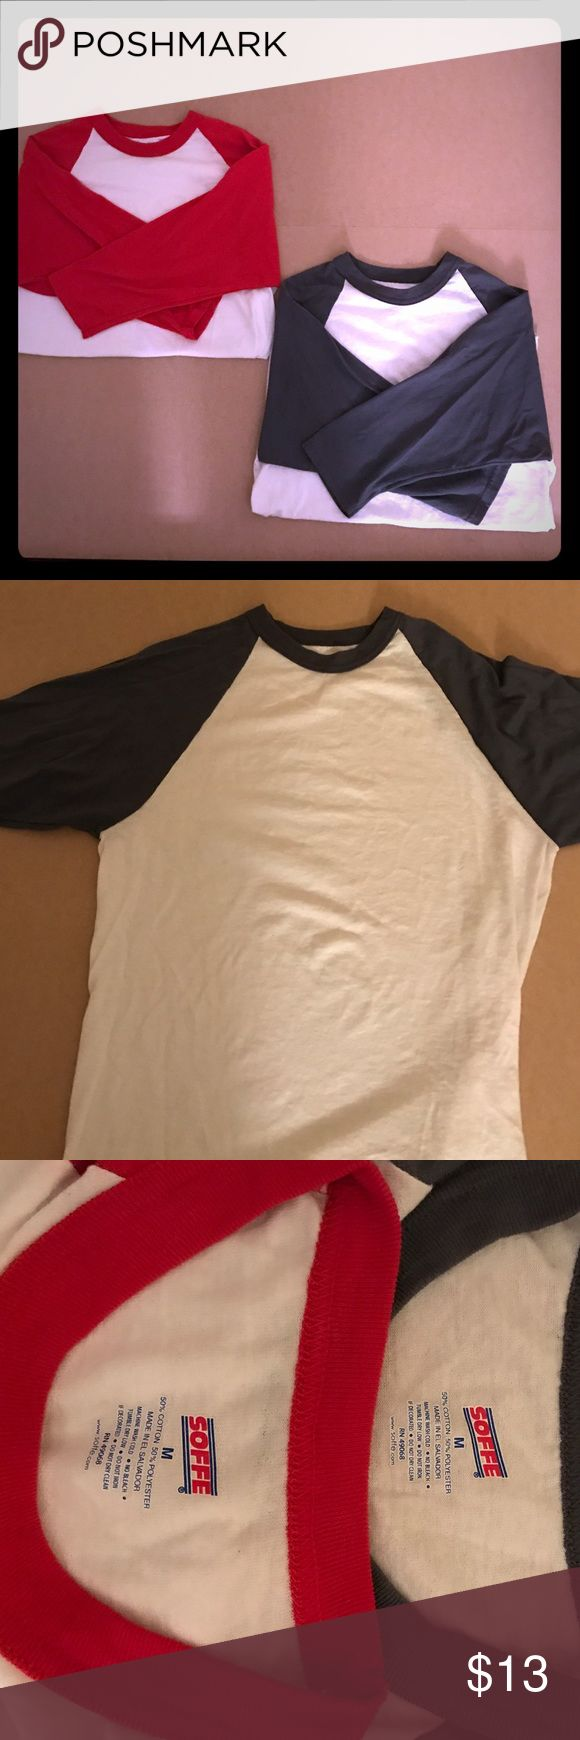 2 plain baseball tees & black shorts Size:M Soffe baseball tees. 3/4 sleeves. Both hardly used and in great condition. Black shorts size:M brand: Danskin Soffe Tops Tees - Long Sleeve